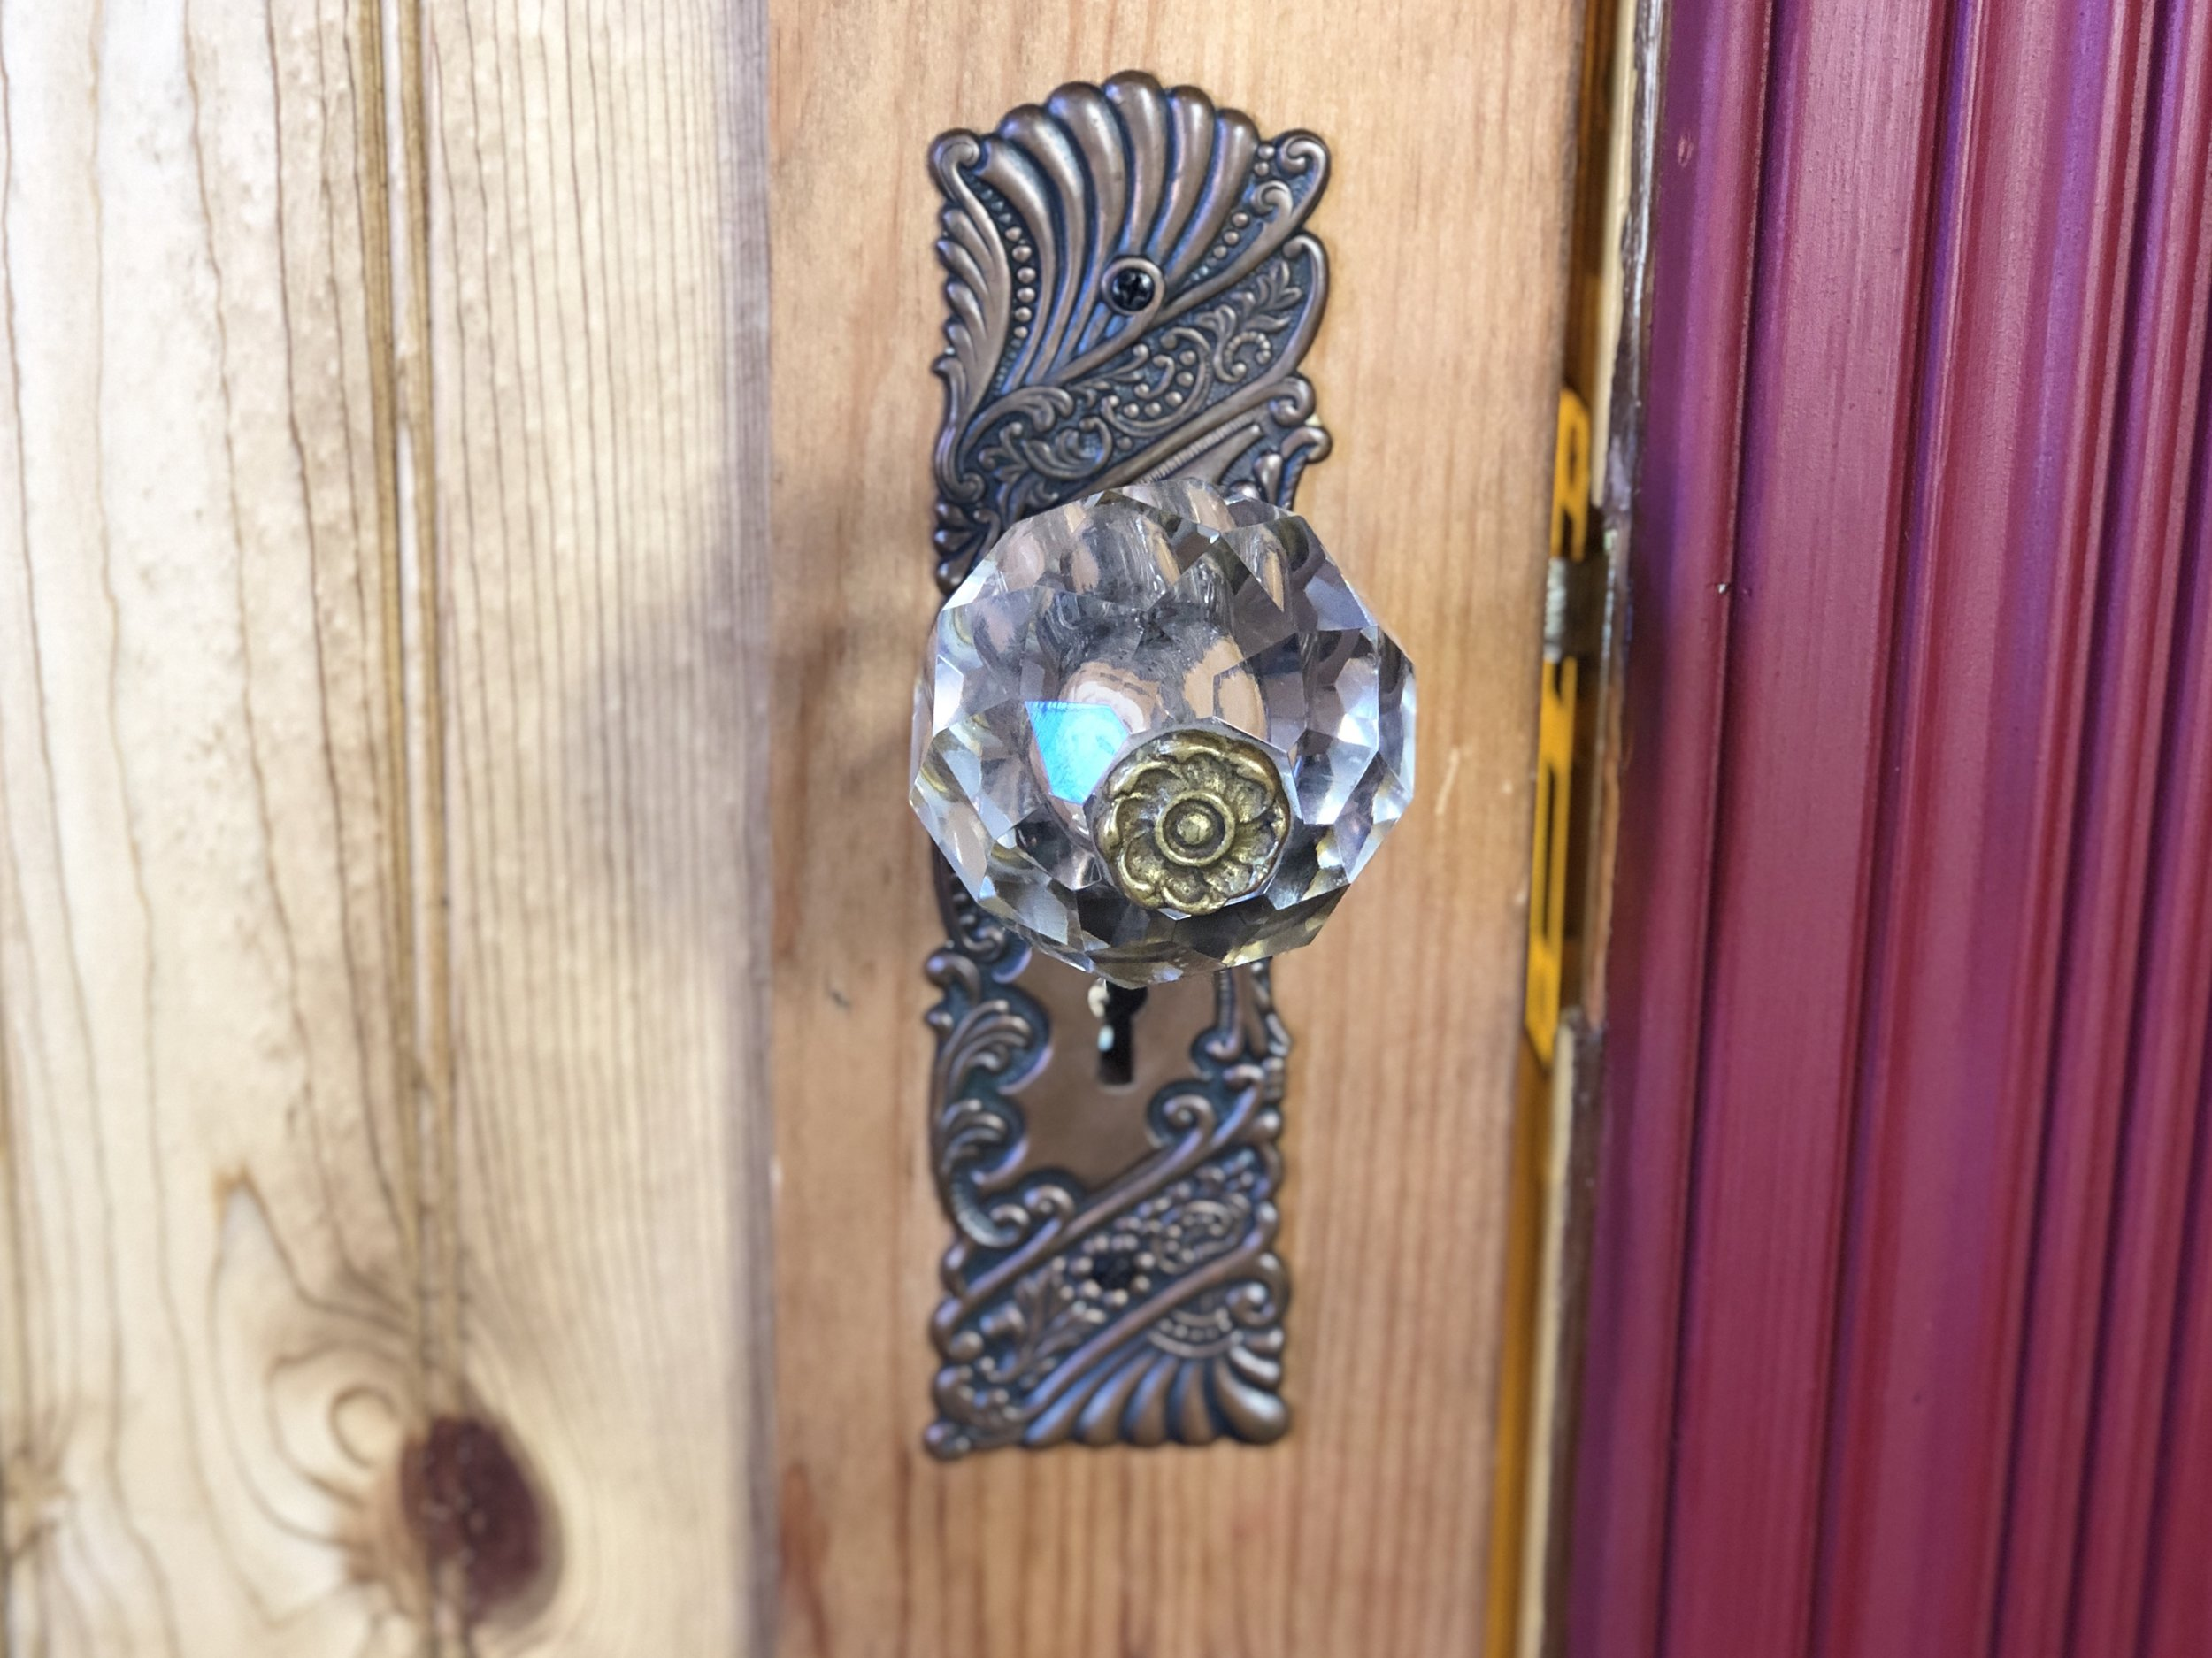 An oversized, whimsical, cut crystal and brass doorknob is perfect on our whimsical little caravan!